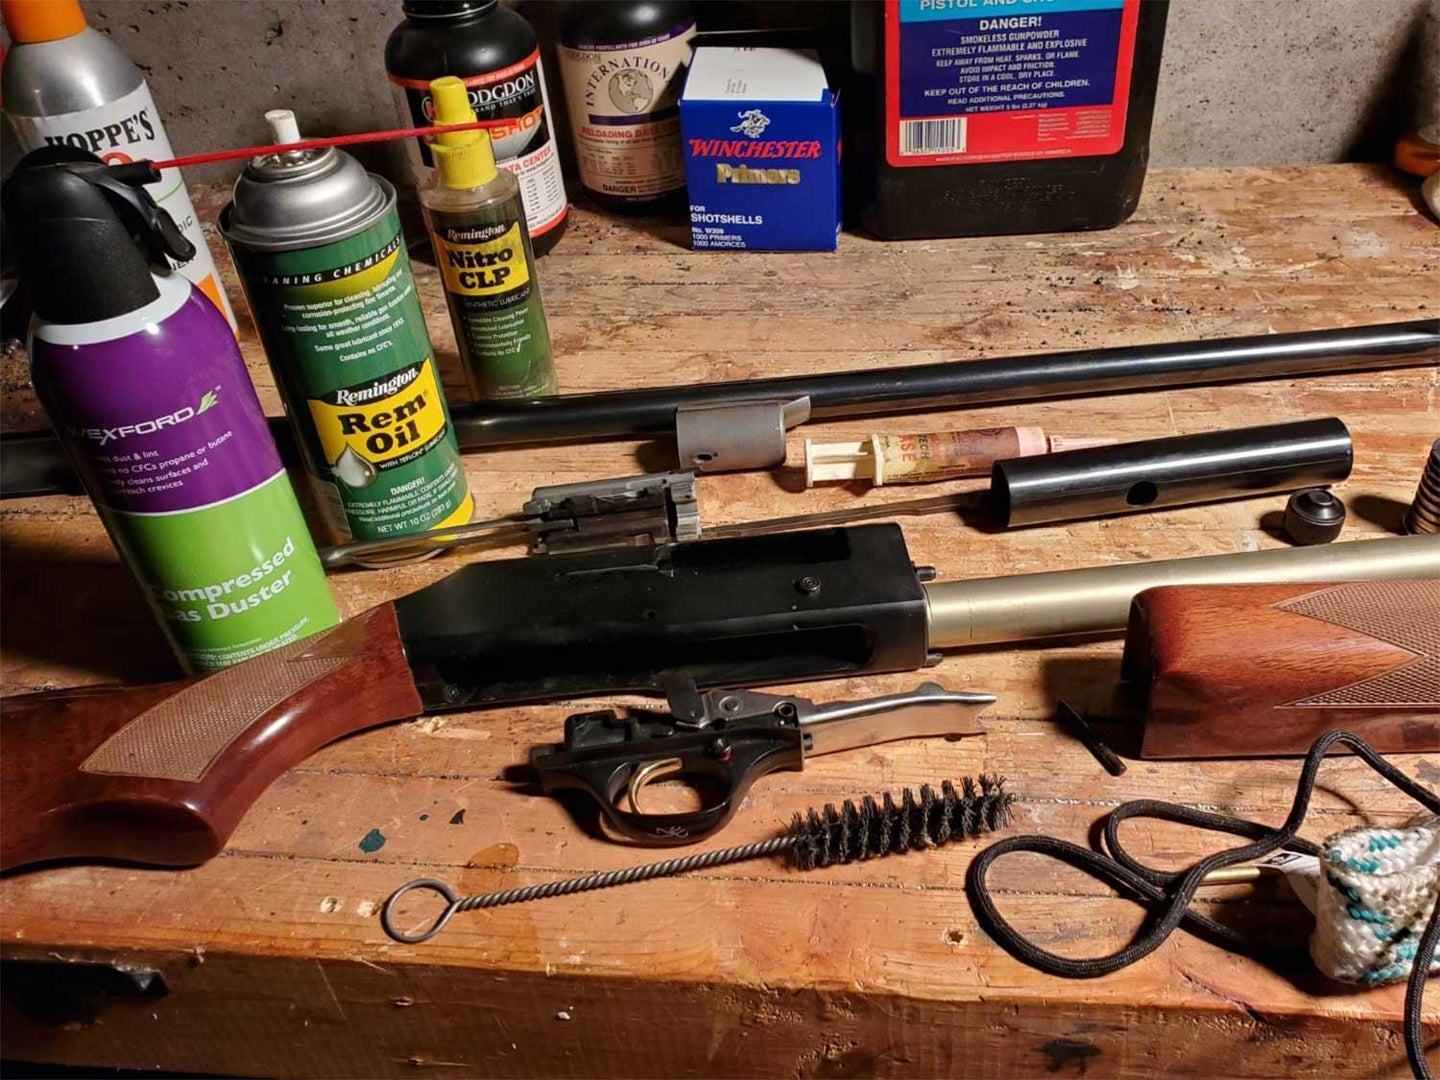 A disaassembled shotgun on a table next to cleaning supplies and tools.